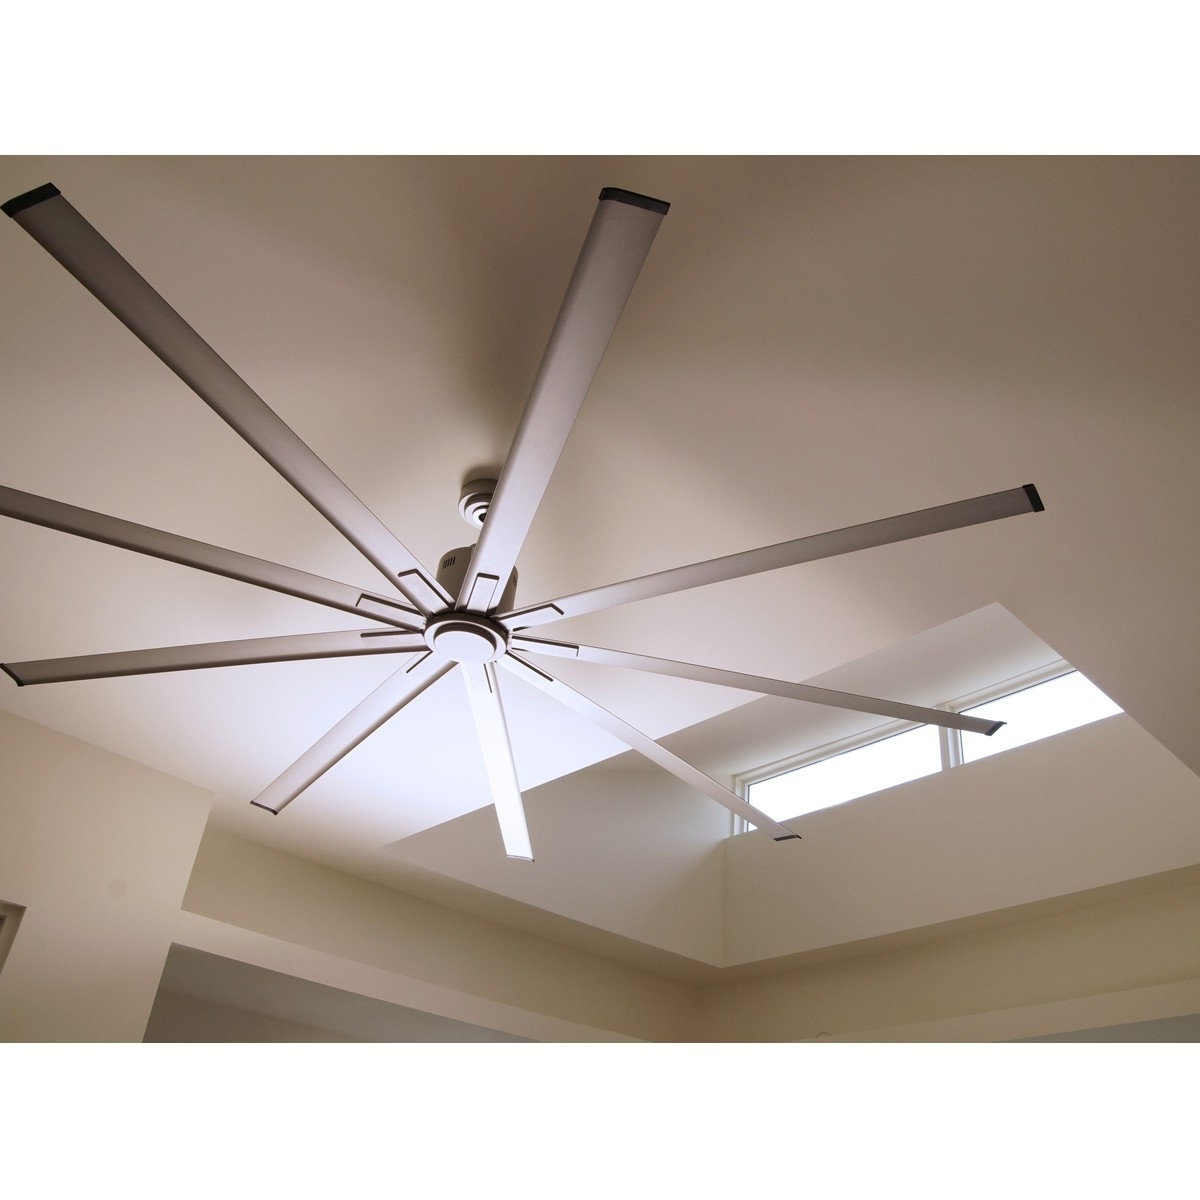 Industrial Outdoor Ceiling Fans Within Most Recently Released 52 Industrial Ceiling Fans, Ceiling Fans With Lights : Light Hunter (Gallery 16 of 20)